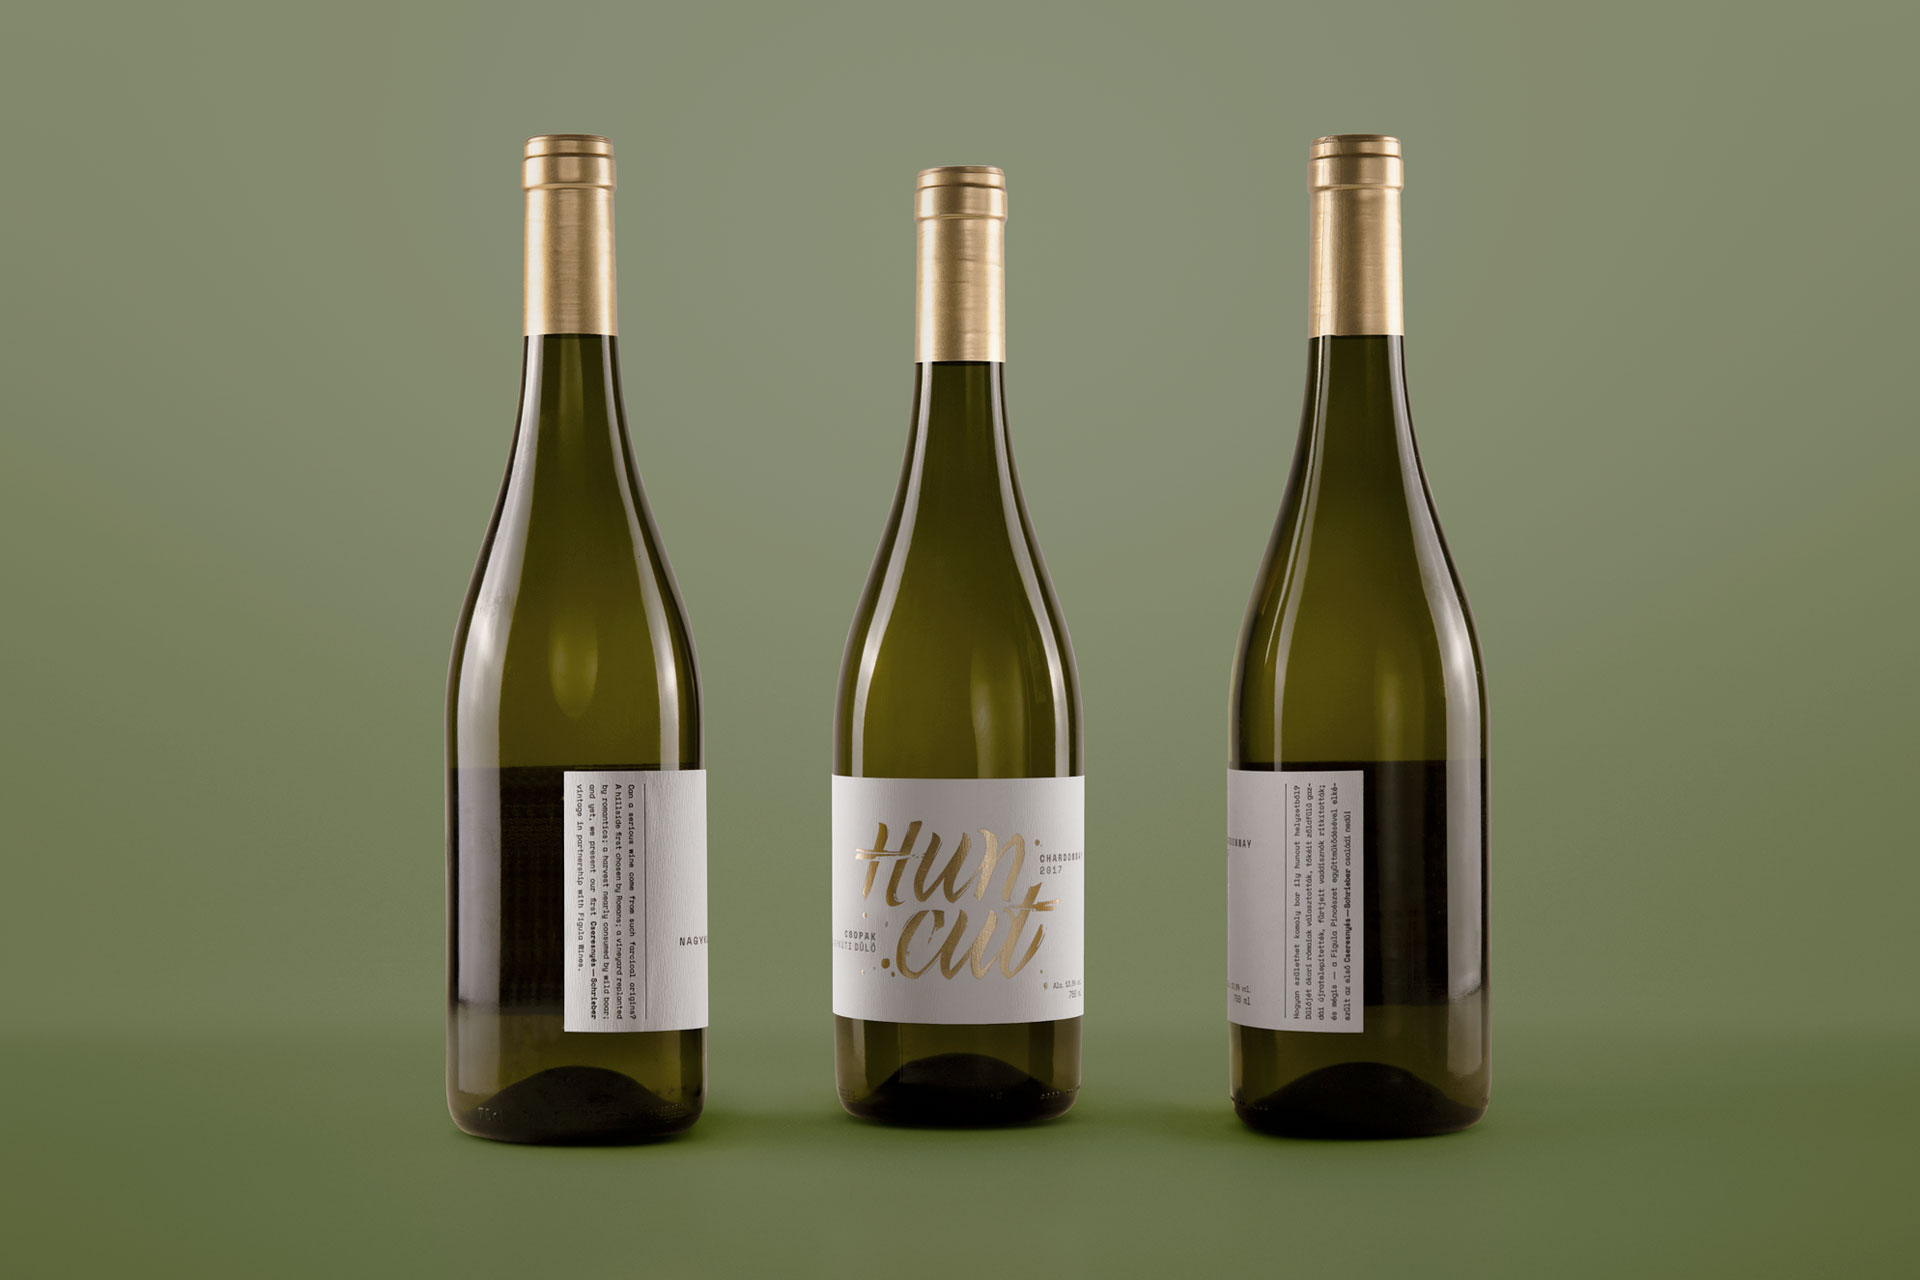 Huncut Wine Label Design